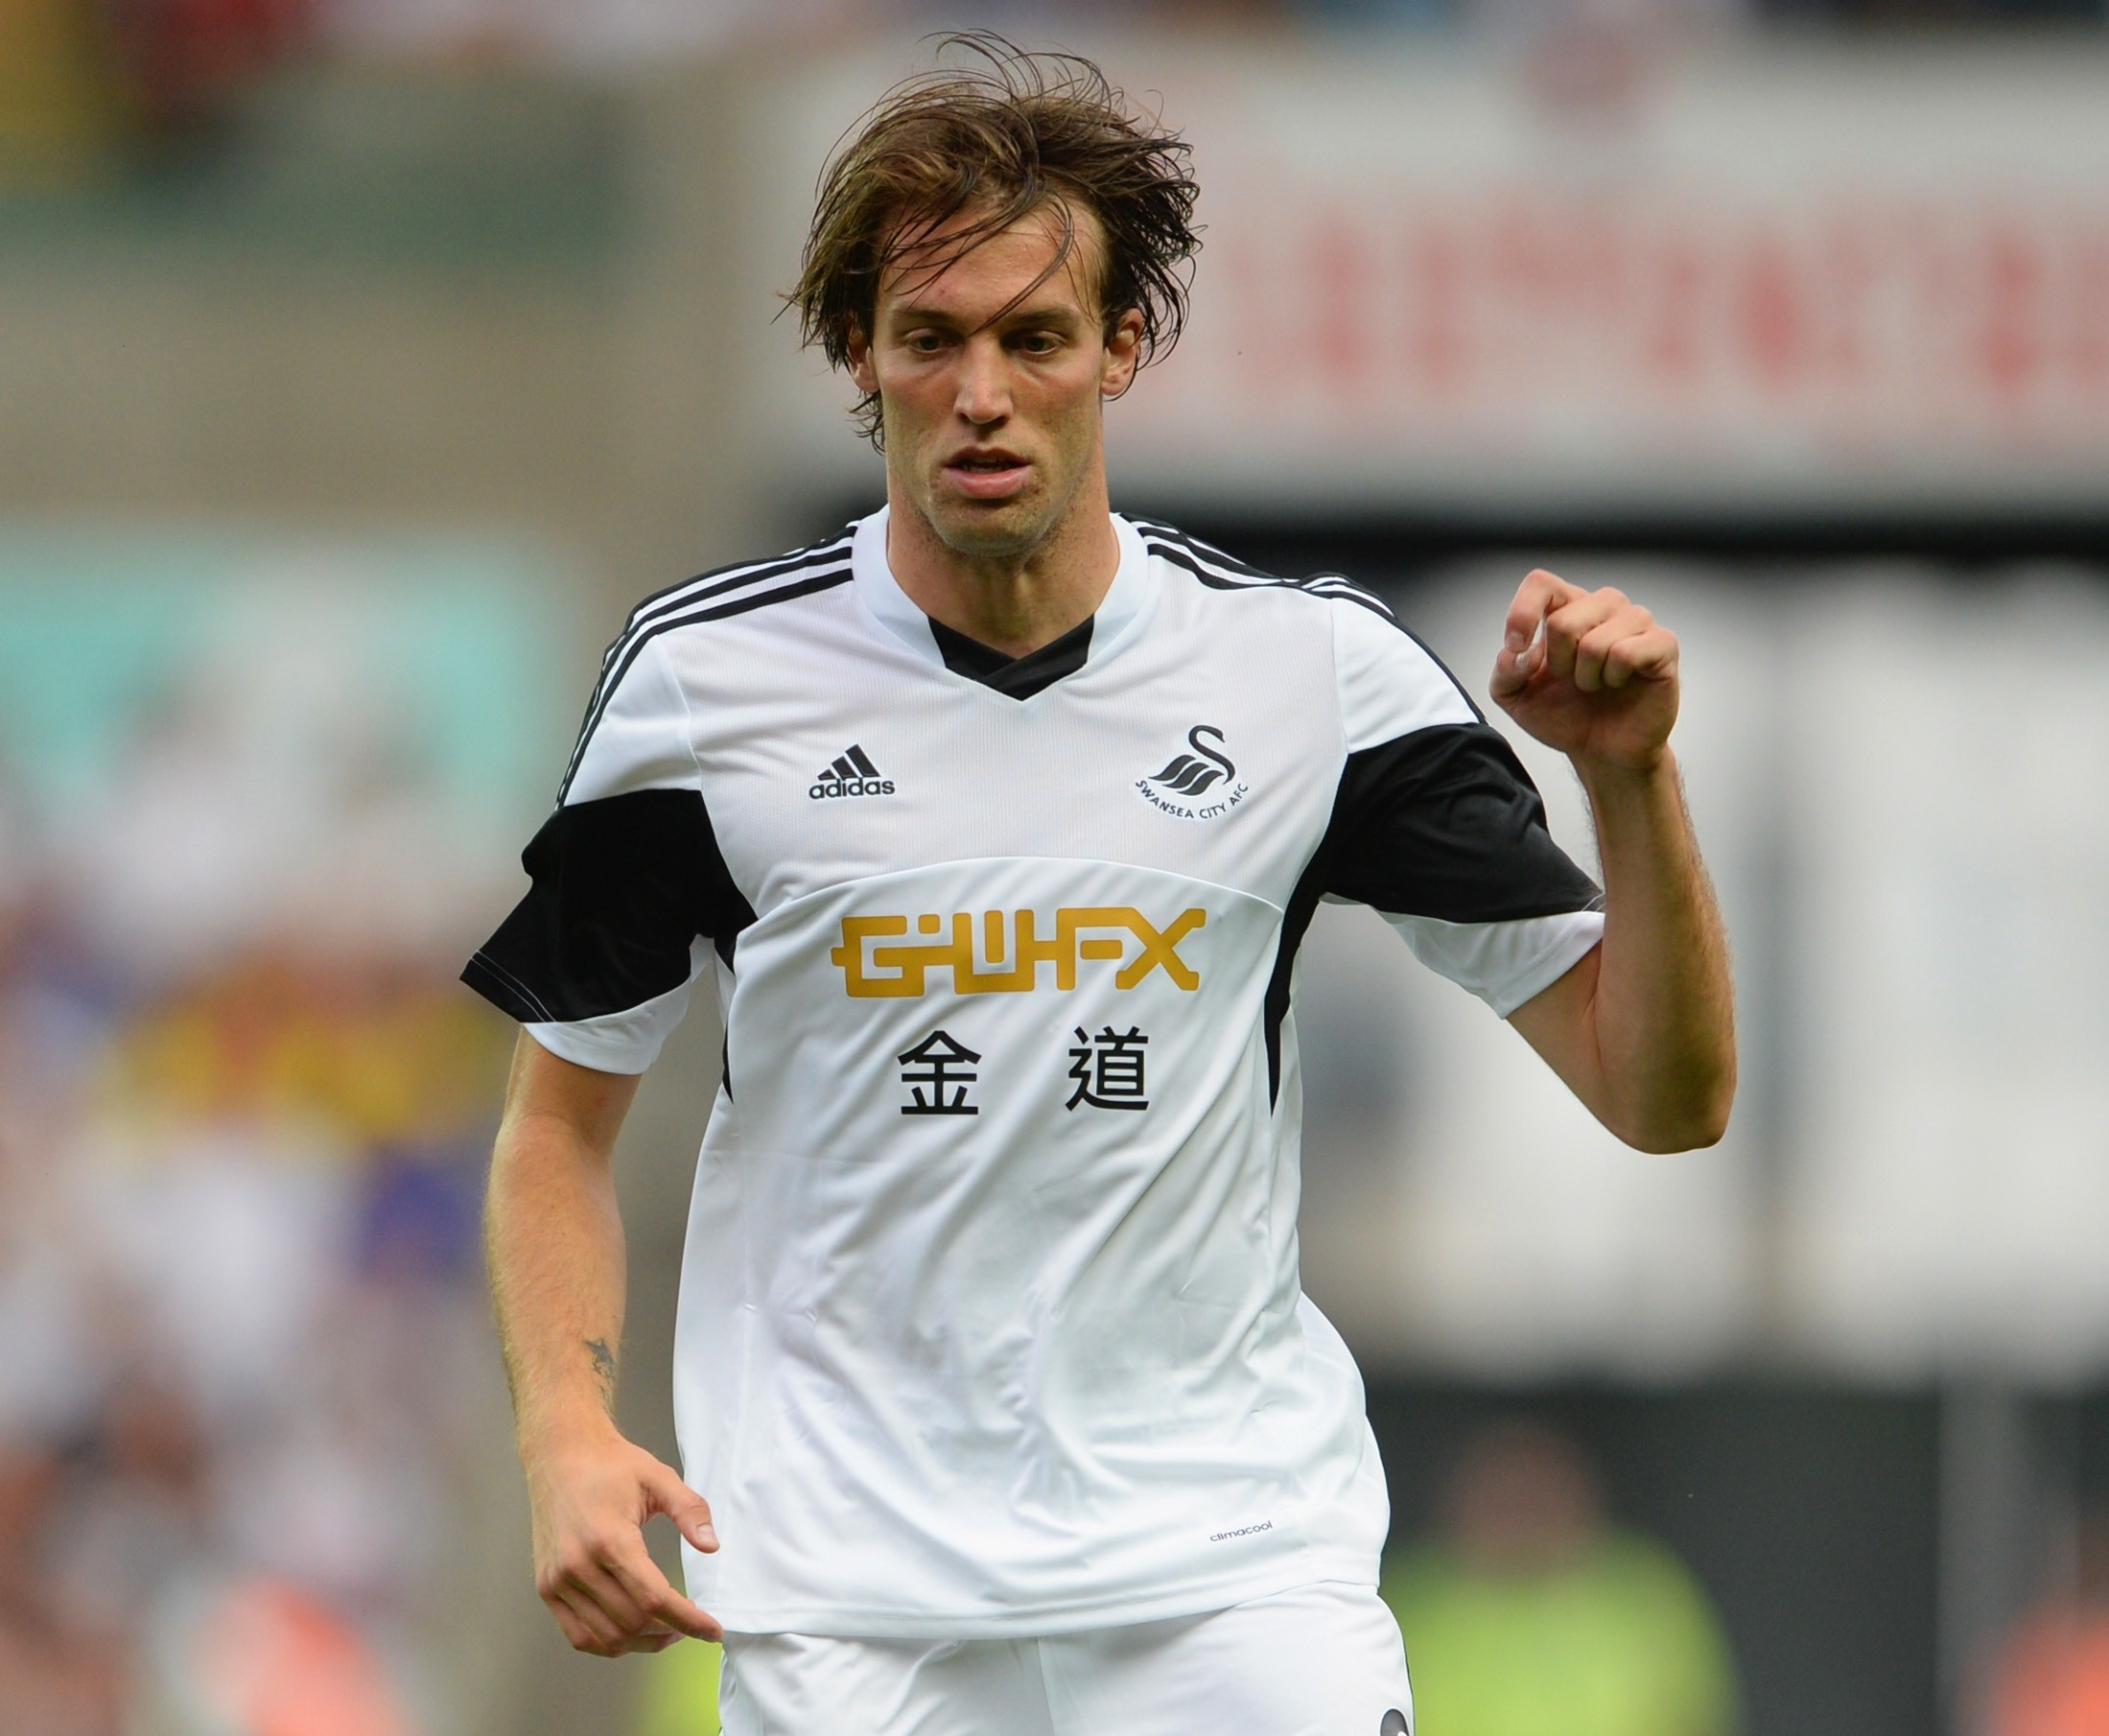 Swansea tell Arsenal Michu will not be cheap as Arsene Wenger targets 'three or four' new signings